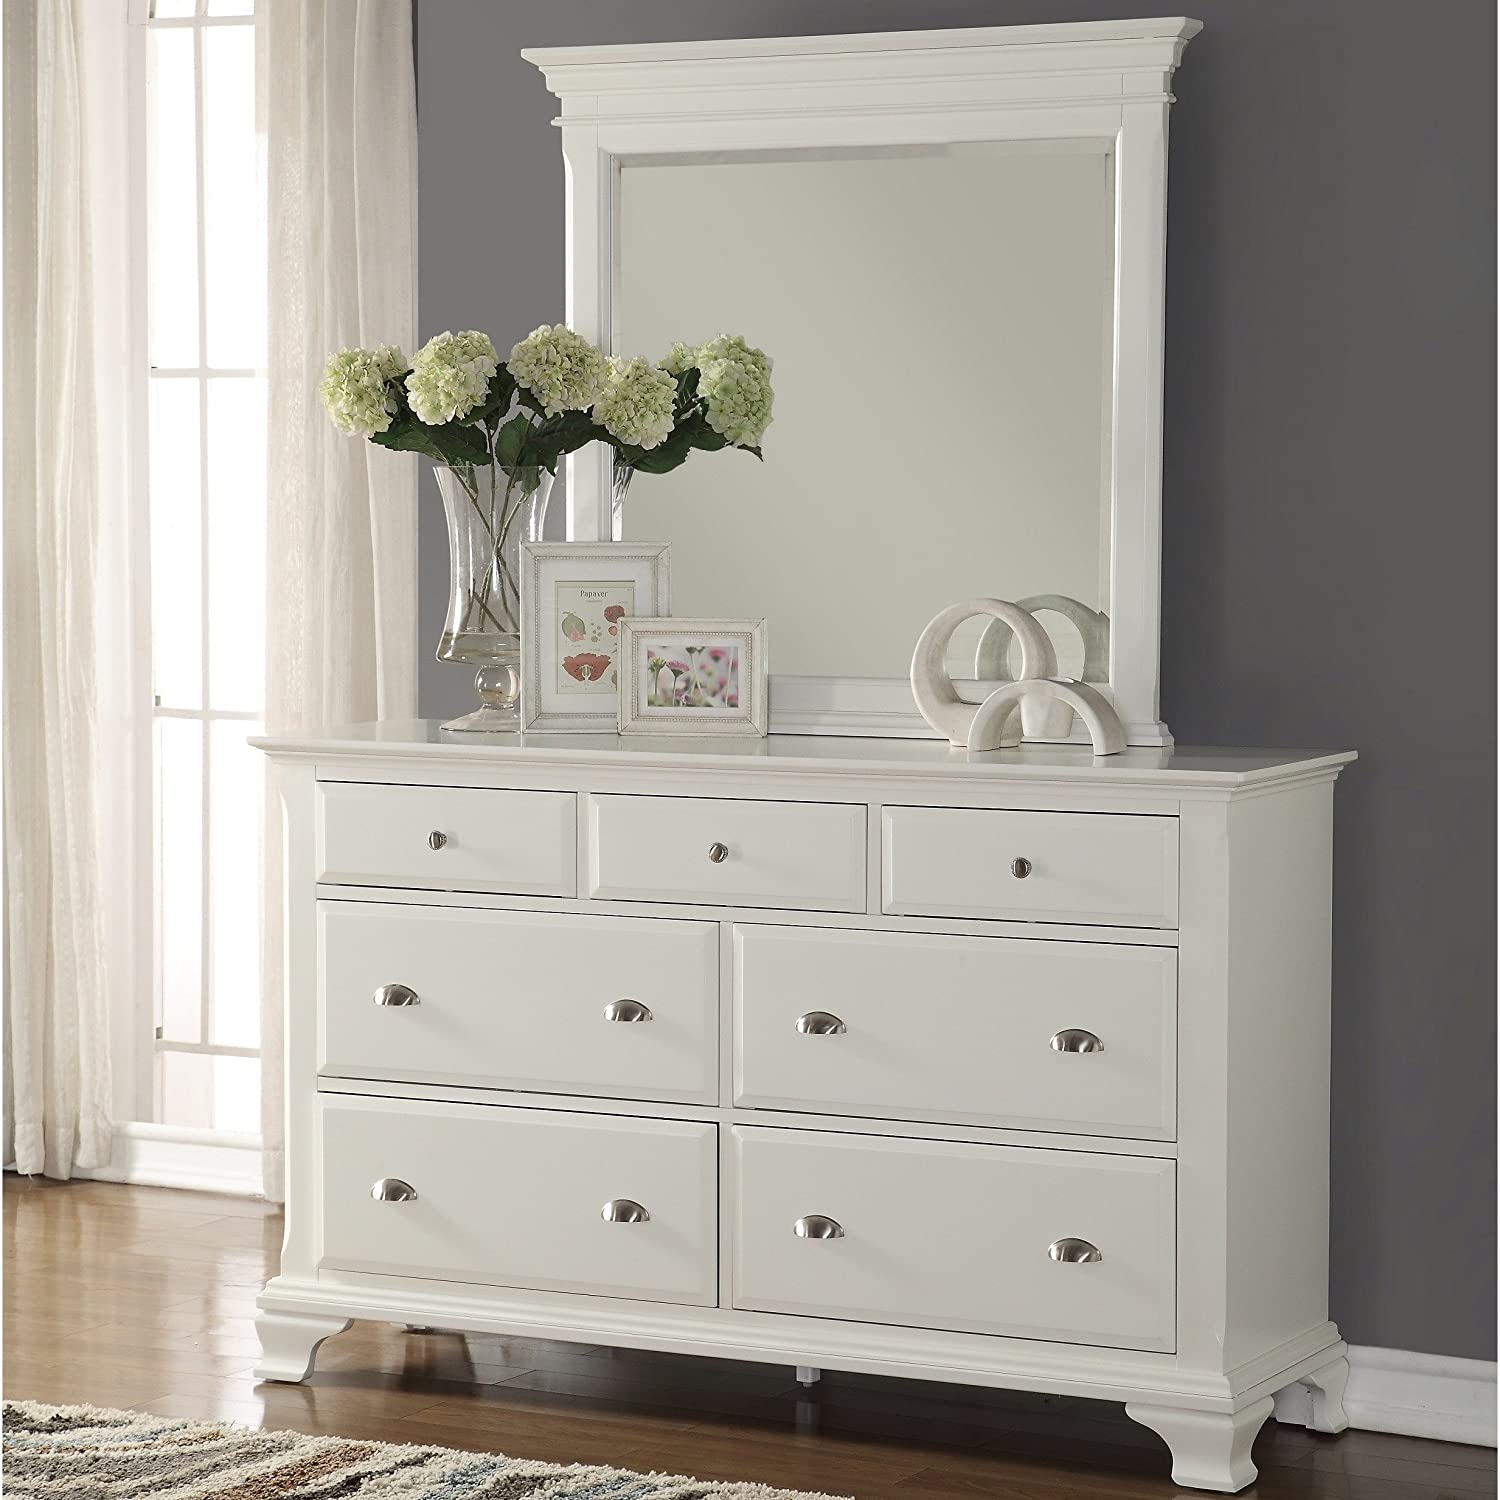 cheap dressers with mirrors – shopx.co